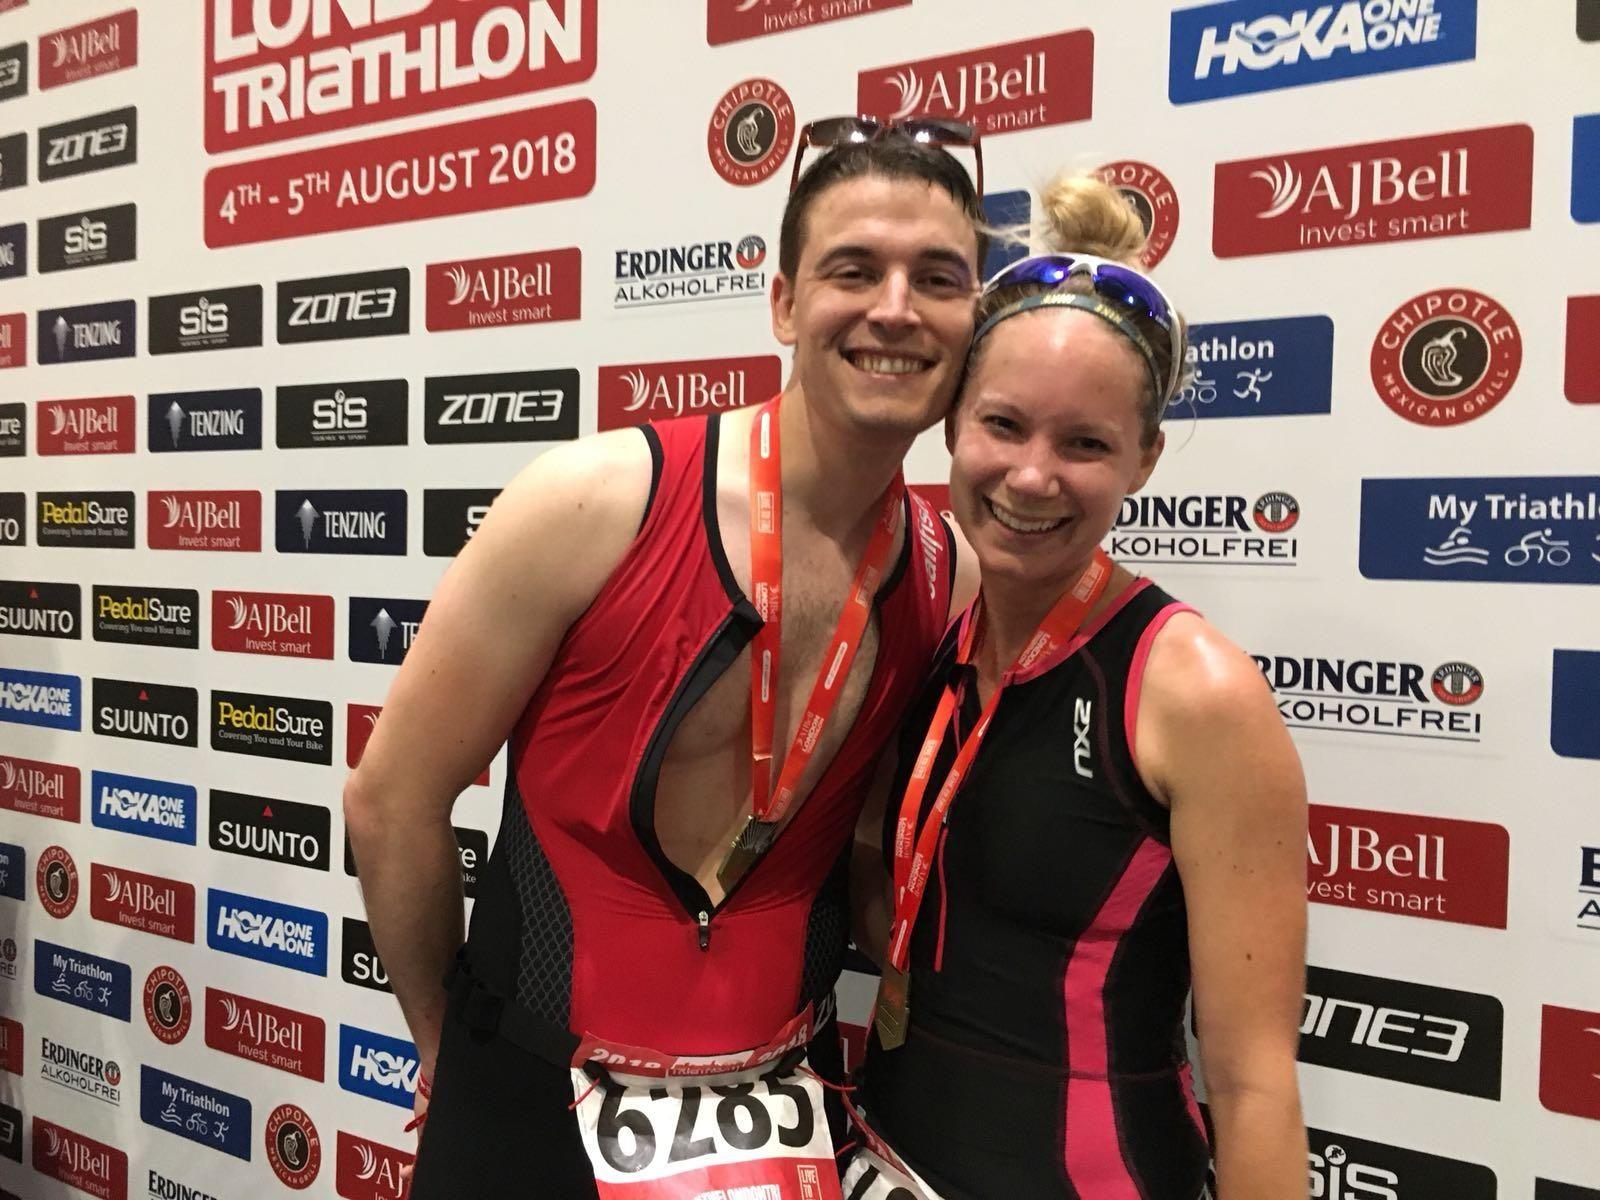 The London Triathlon